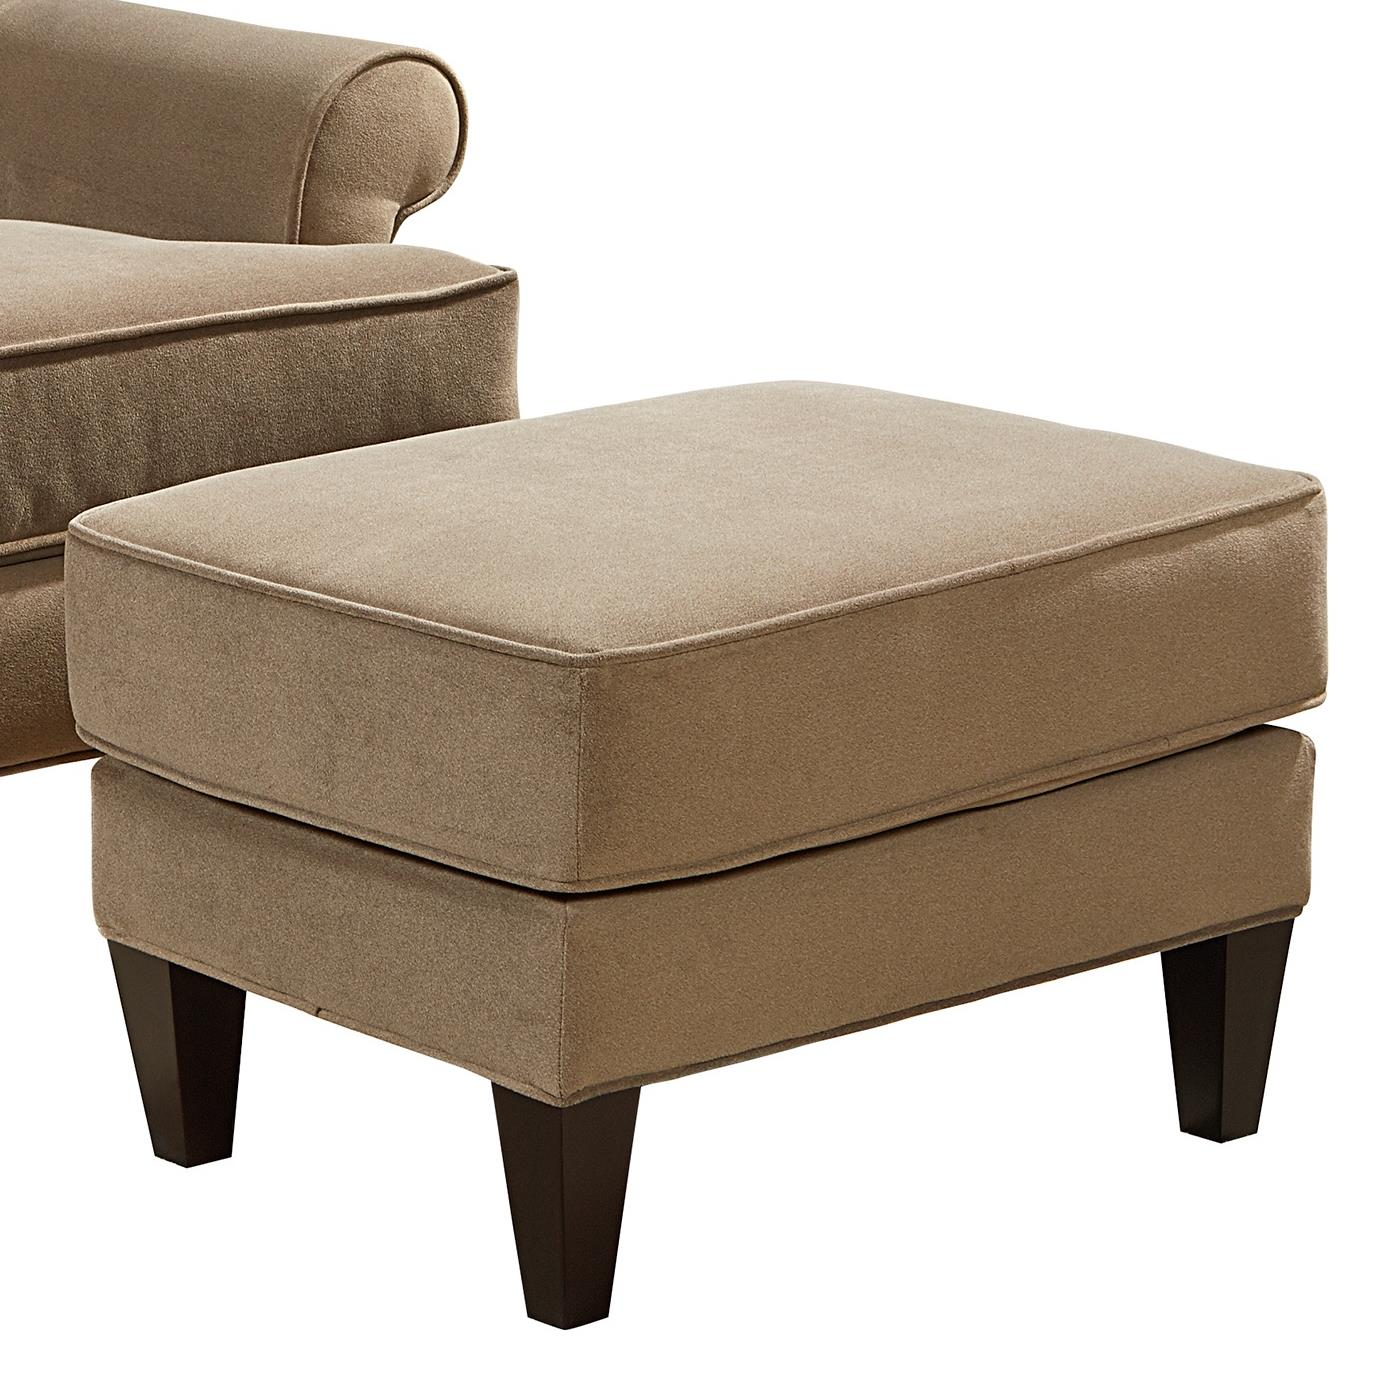 Broyhill Furniture Flint Ottoman - Item Number: 4252-5-4238-83